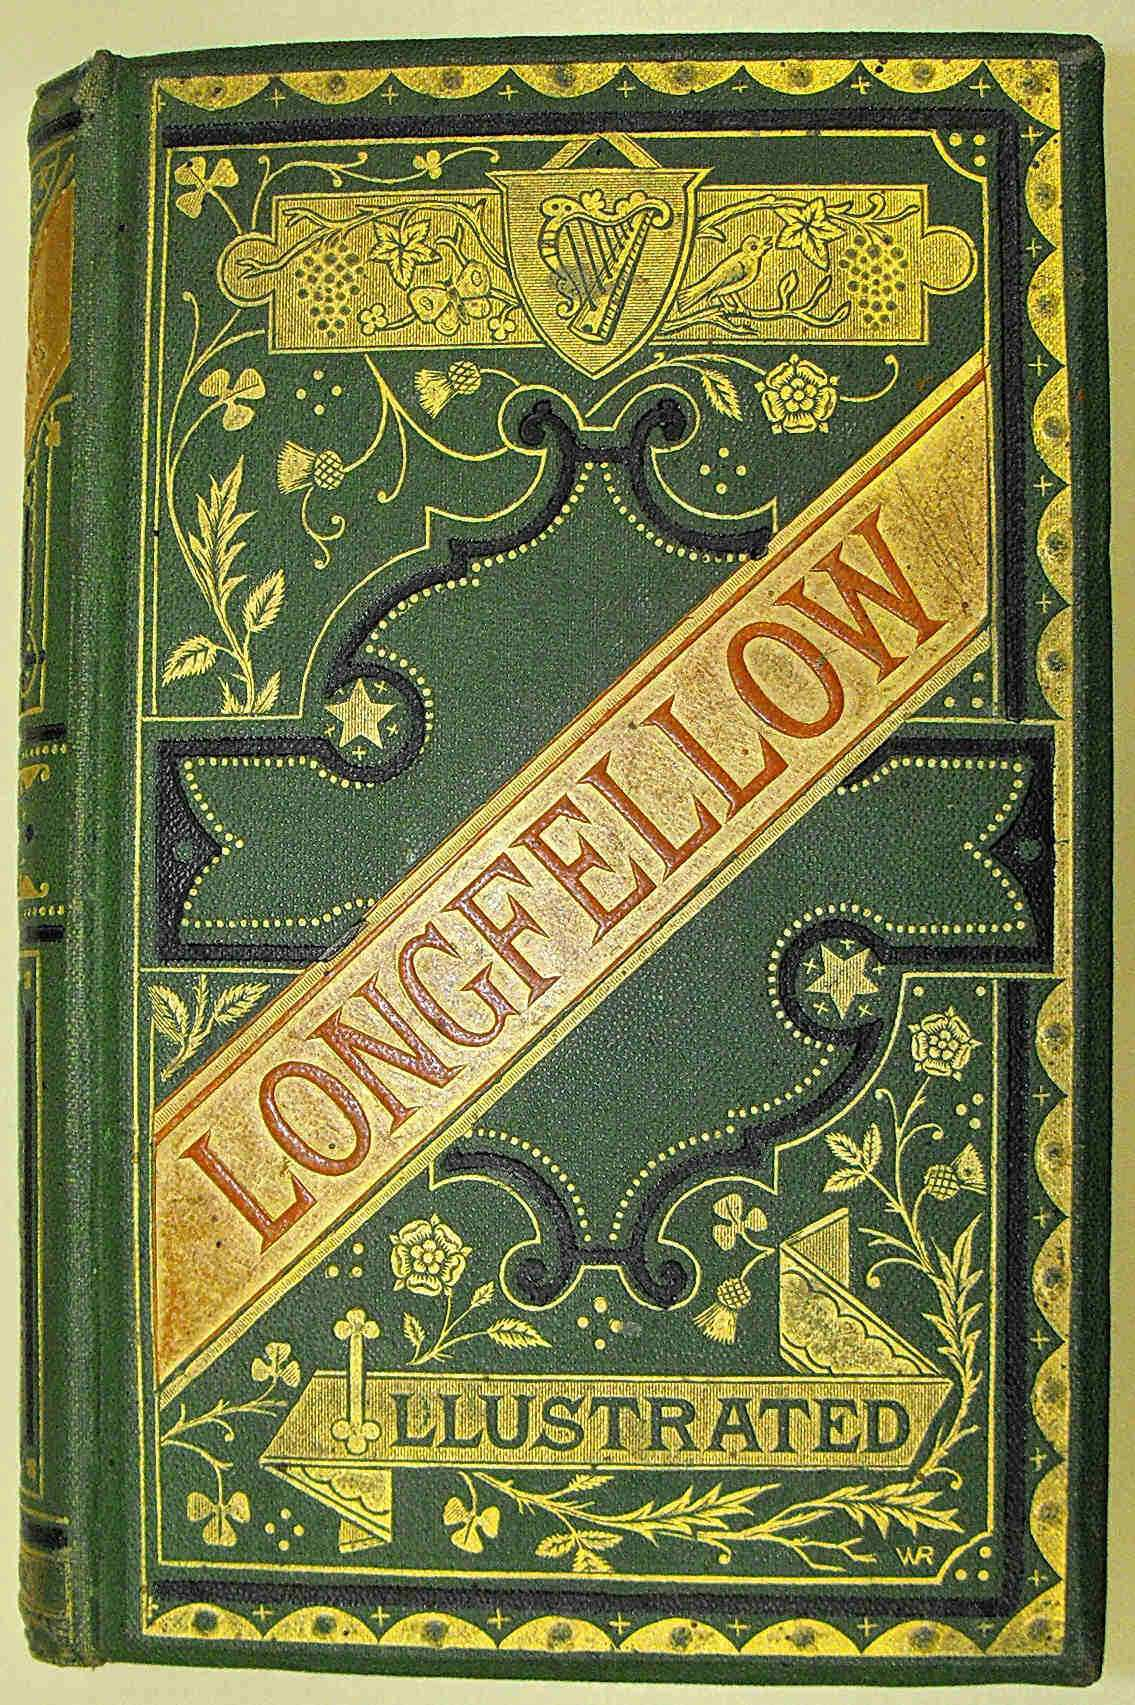 THE POETICAL WORKS OF HENRY WADSWORTH LONGFELLOW - AUTOR'S COMPLETE EDITION